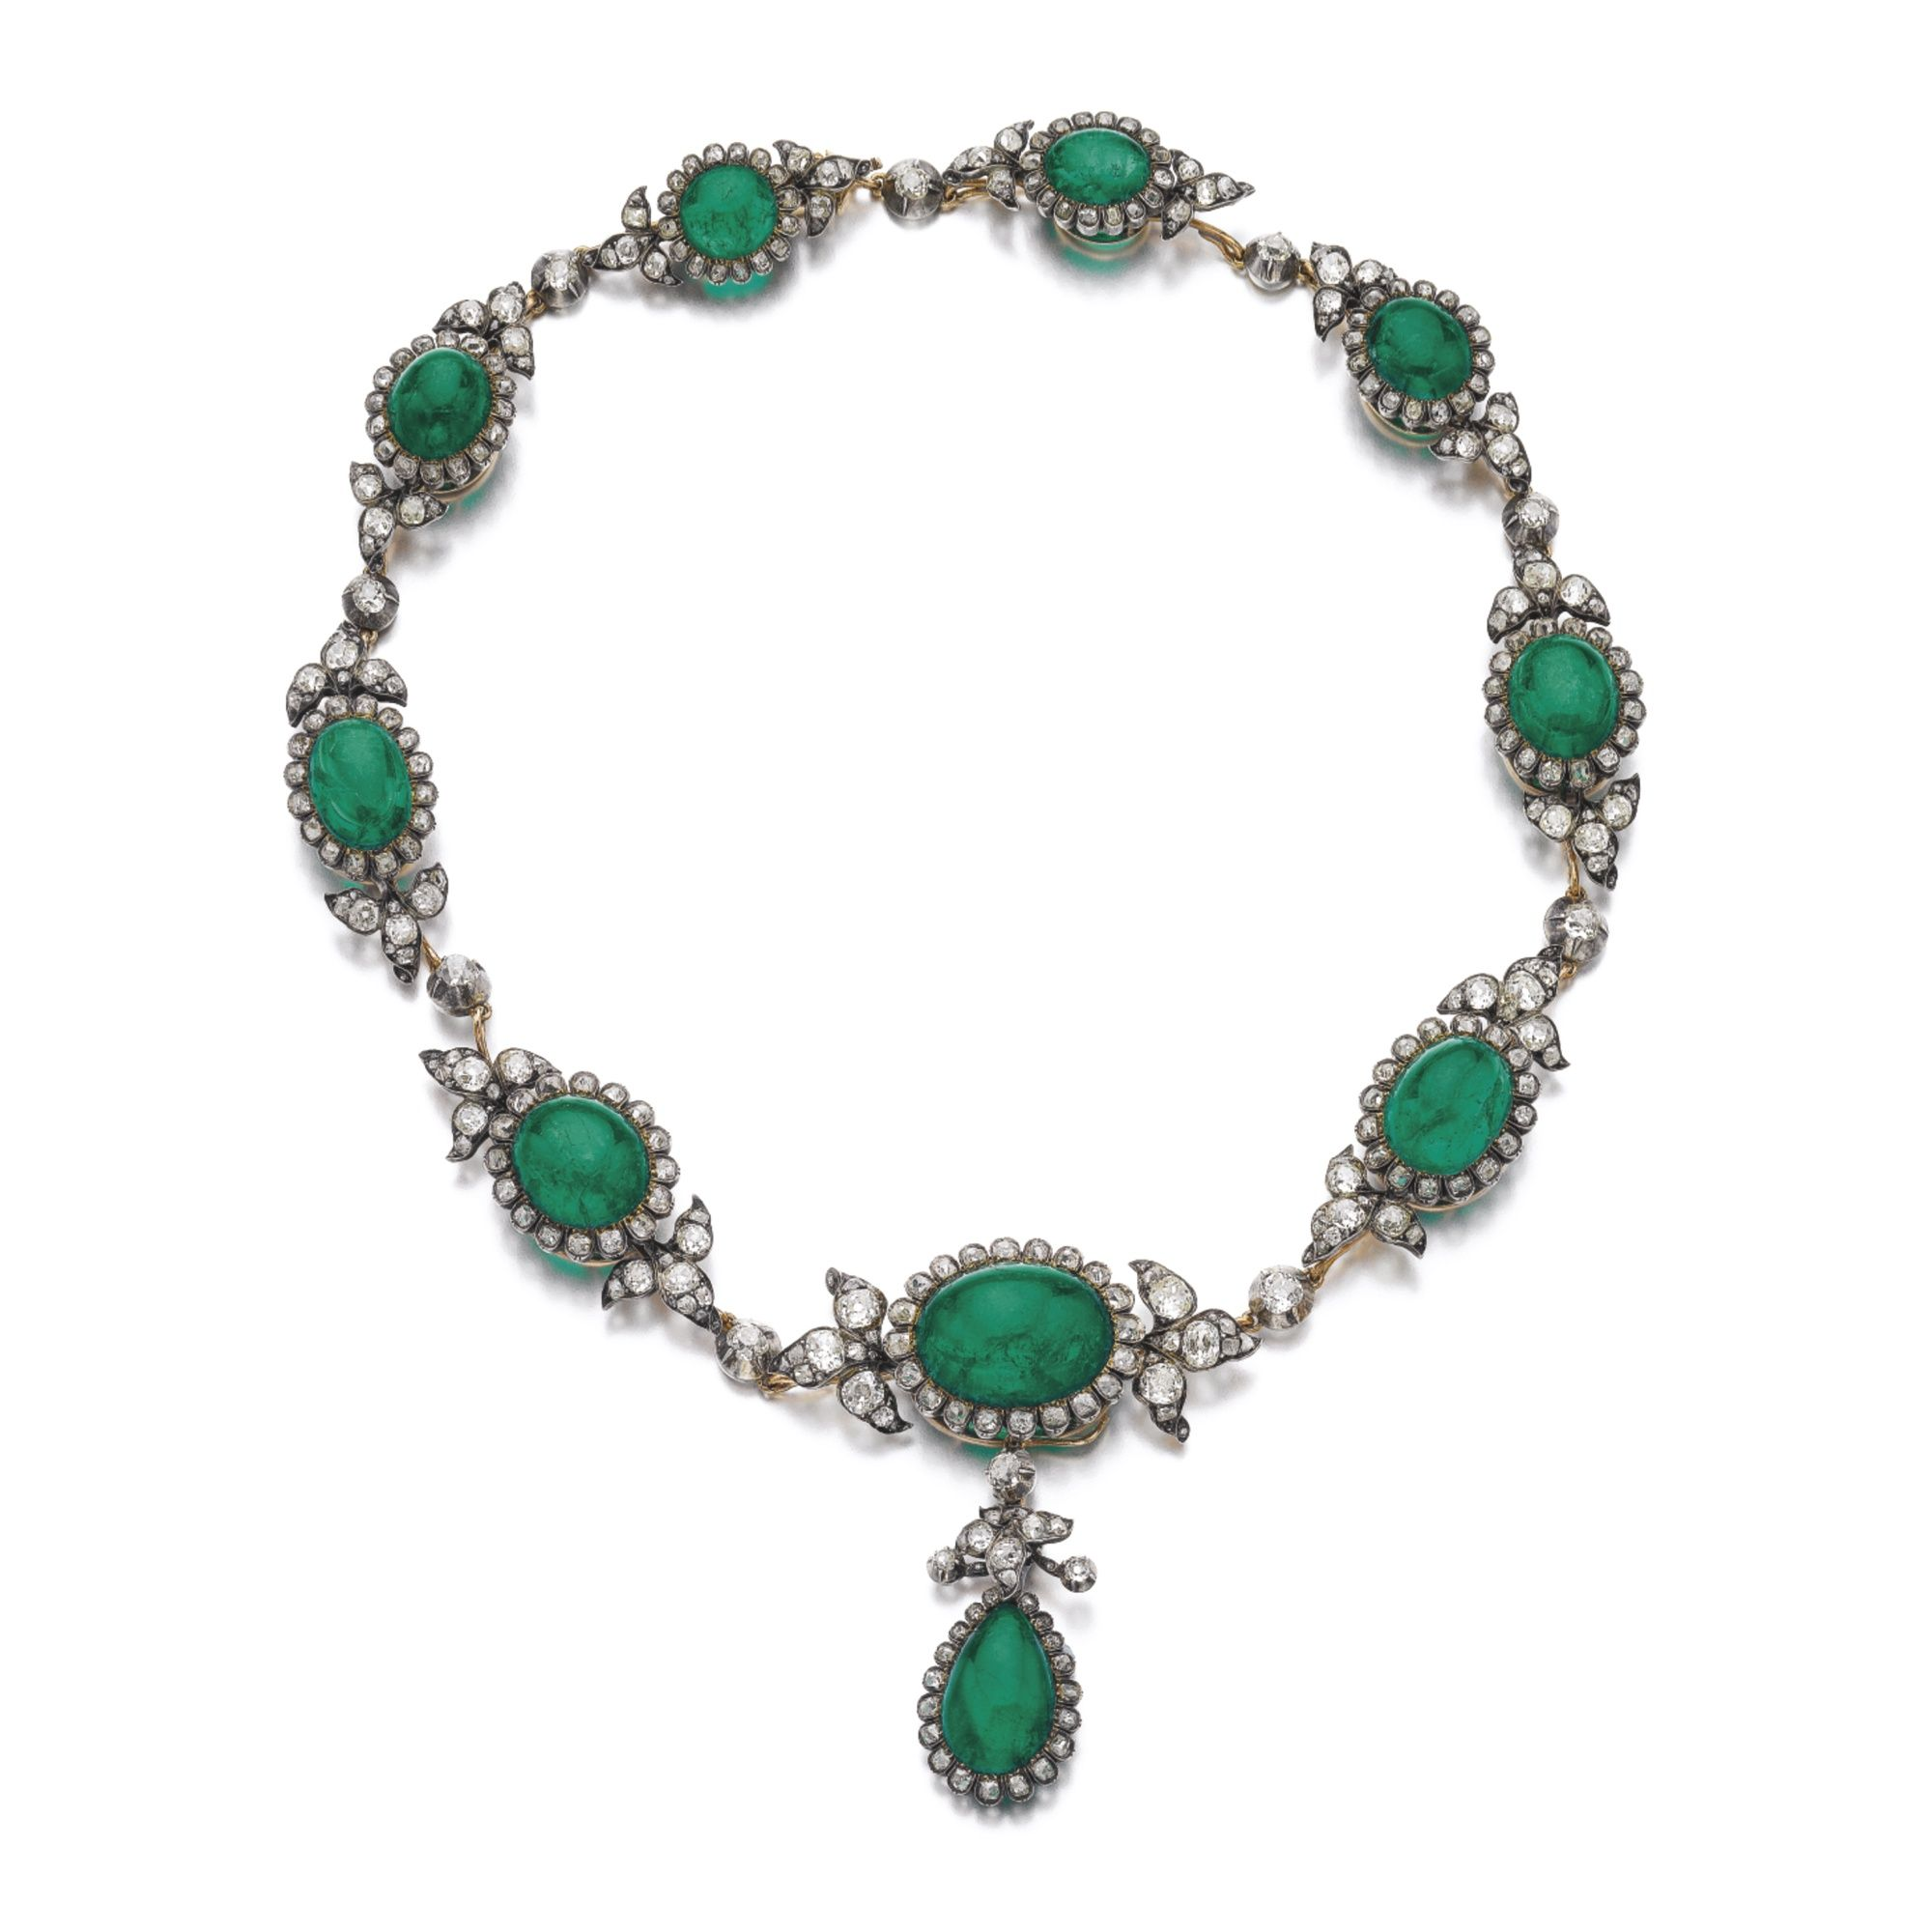 Emerald and diamond necklace late th century set with cabochon